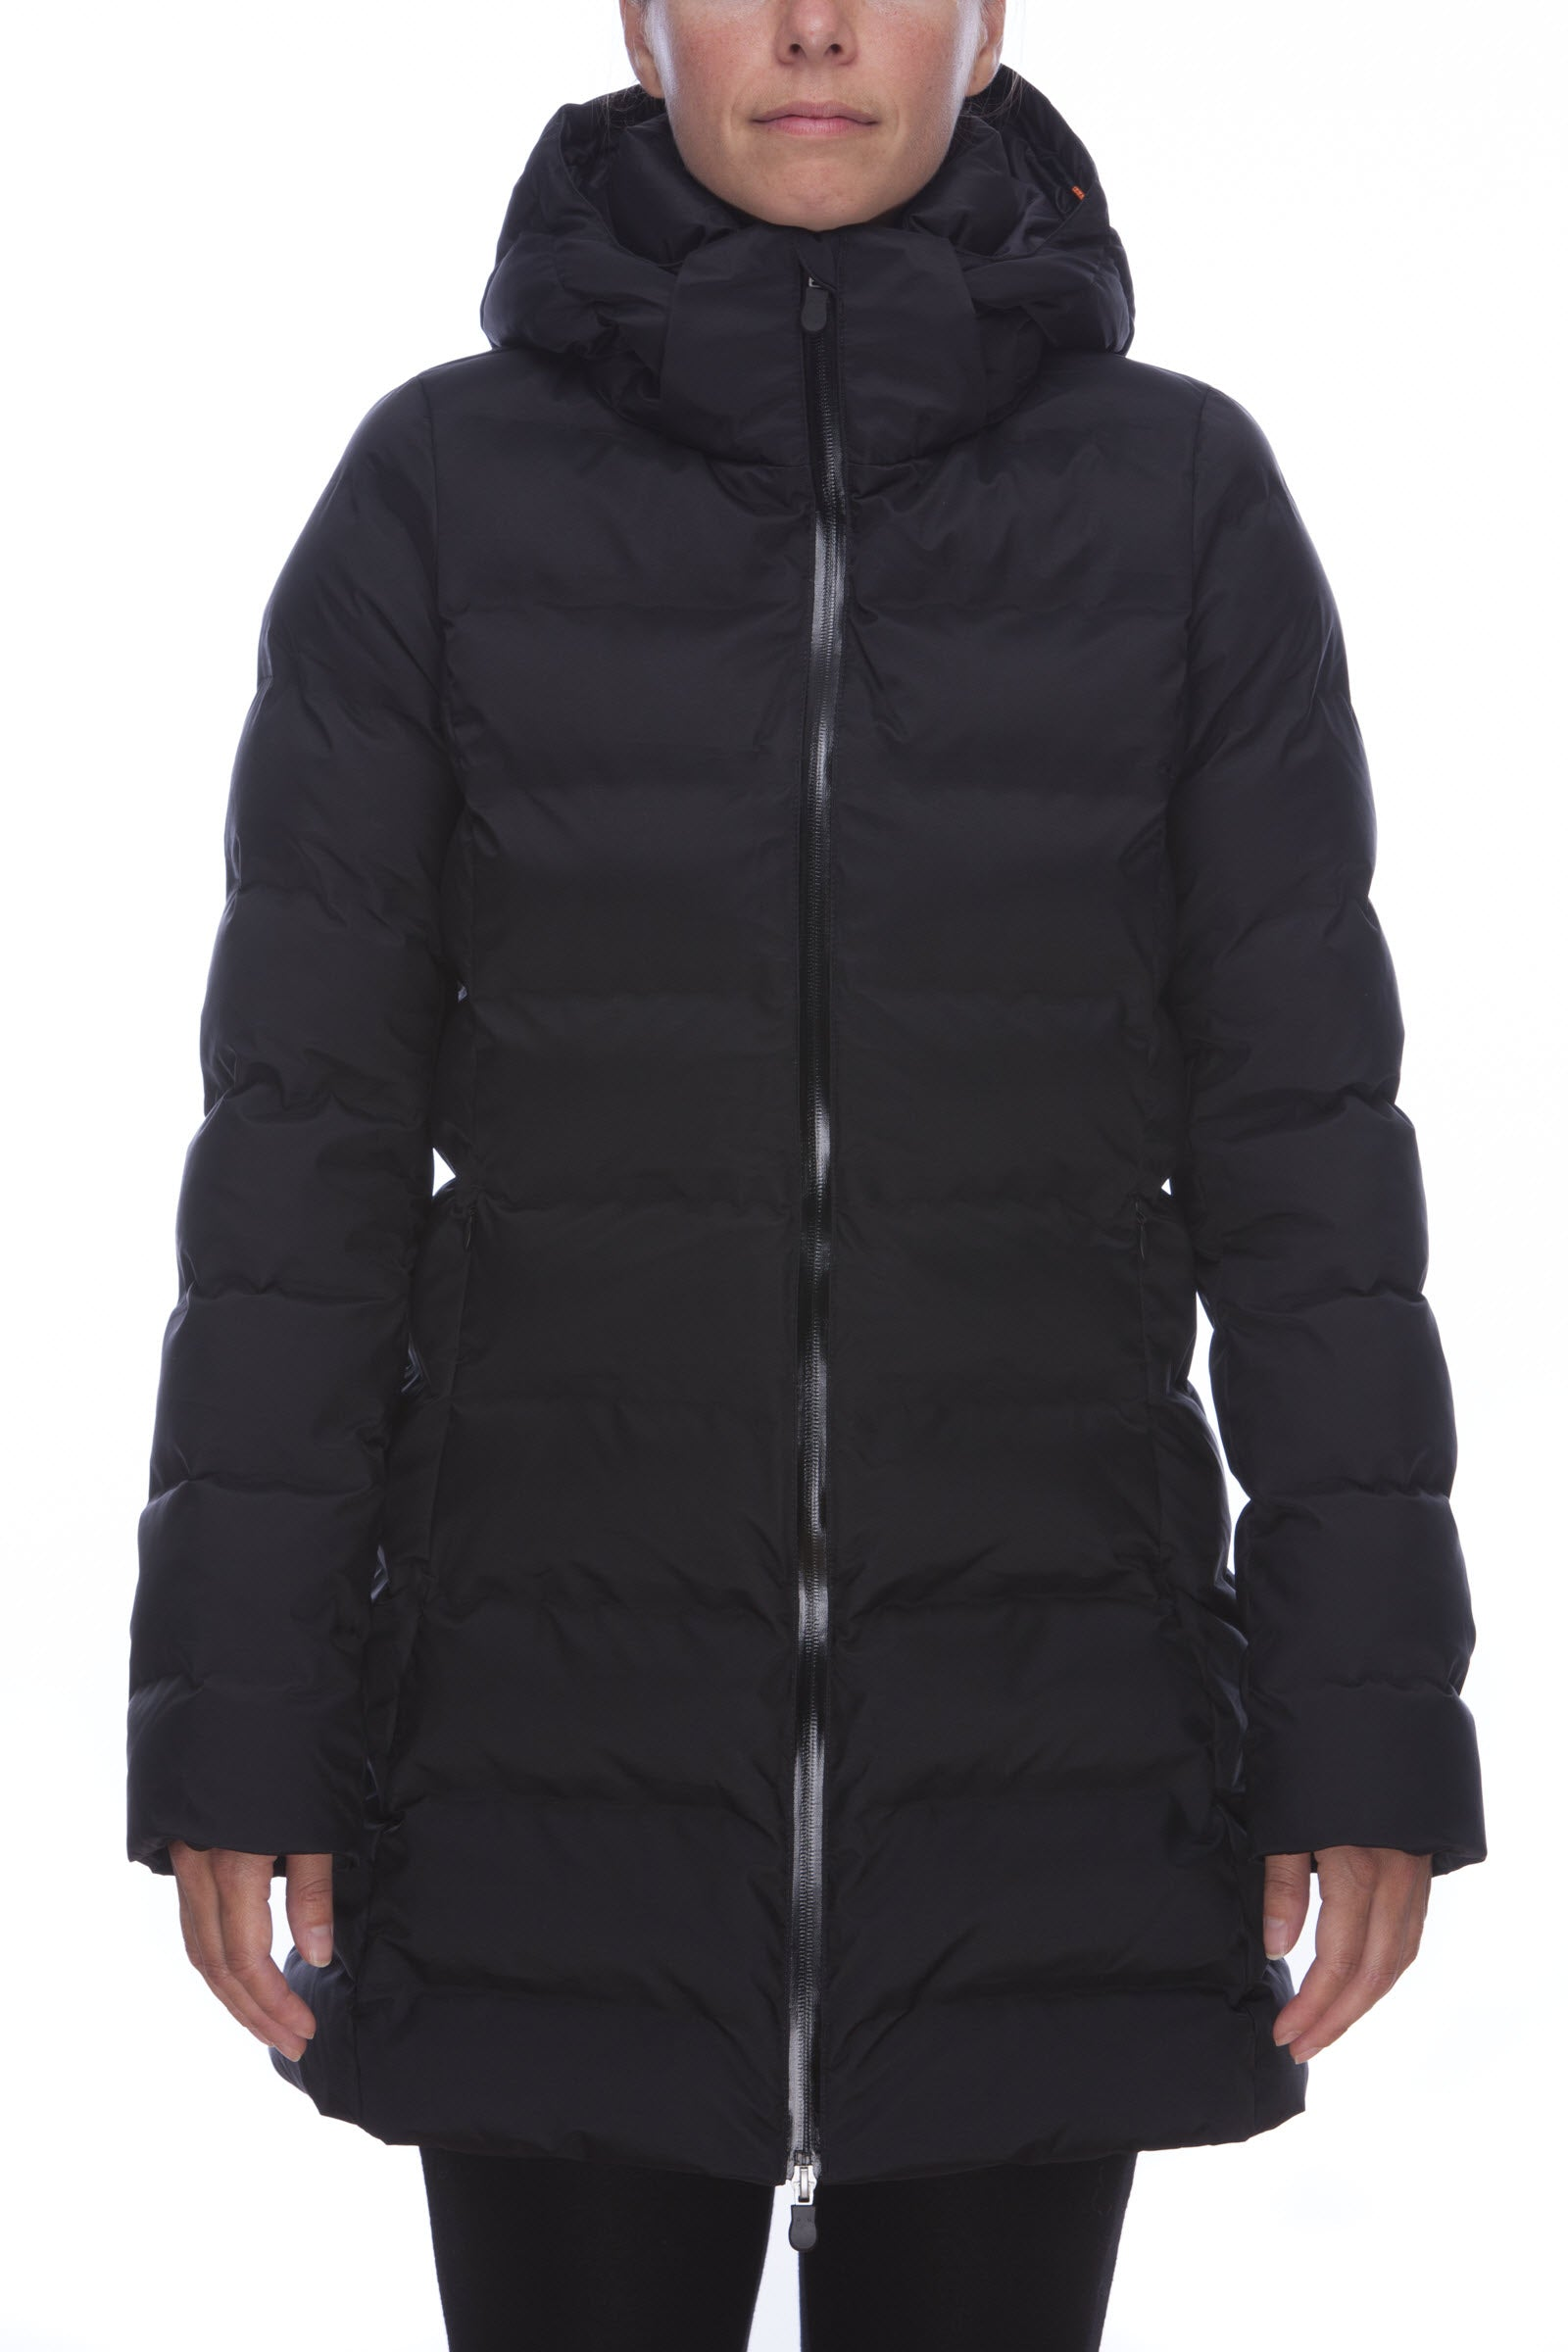 b34c1d90d66f9 Save The Duck Women s Coat in Black - Save the Duck